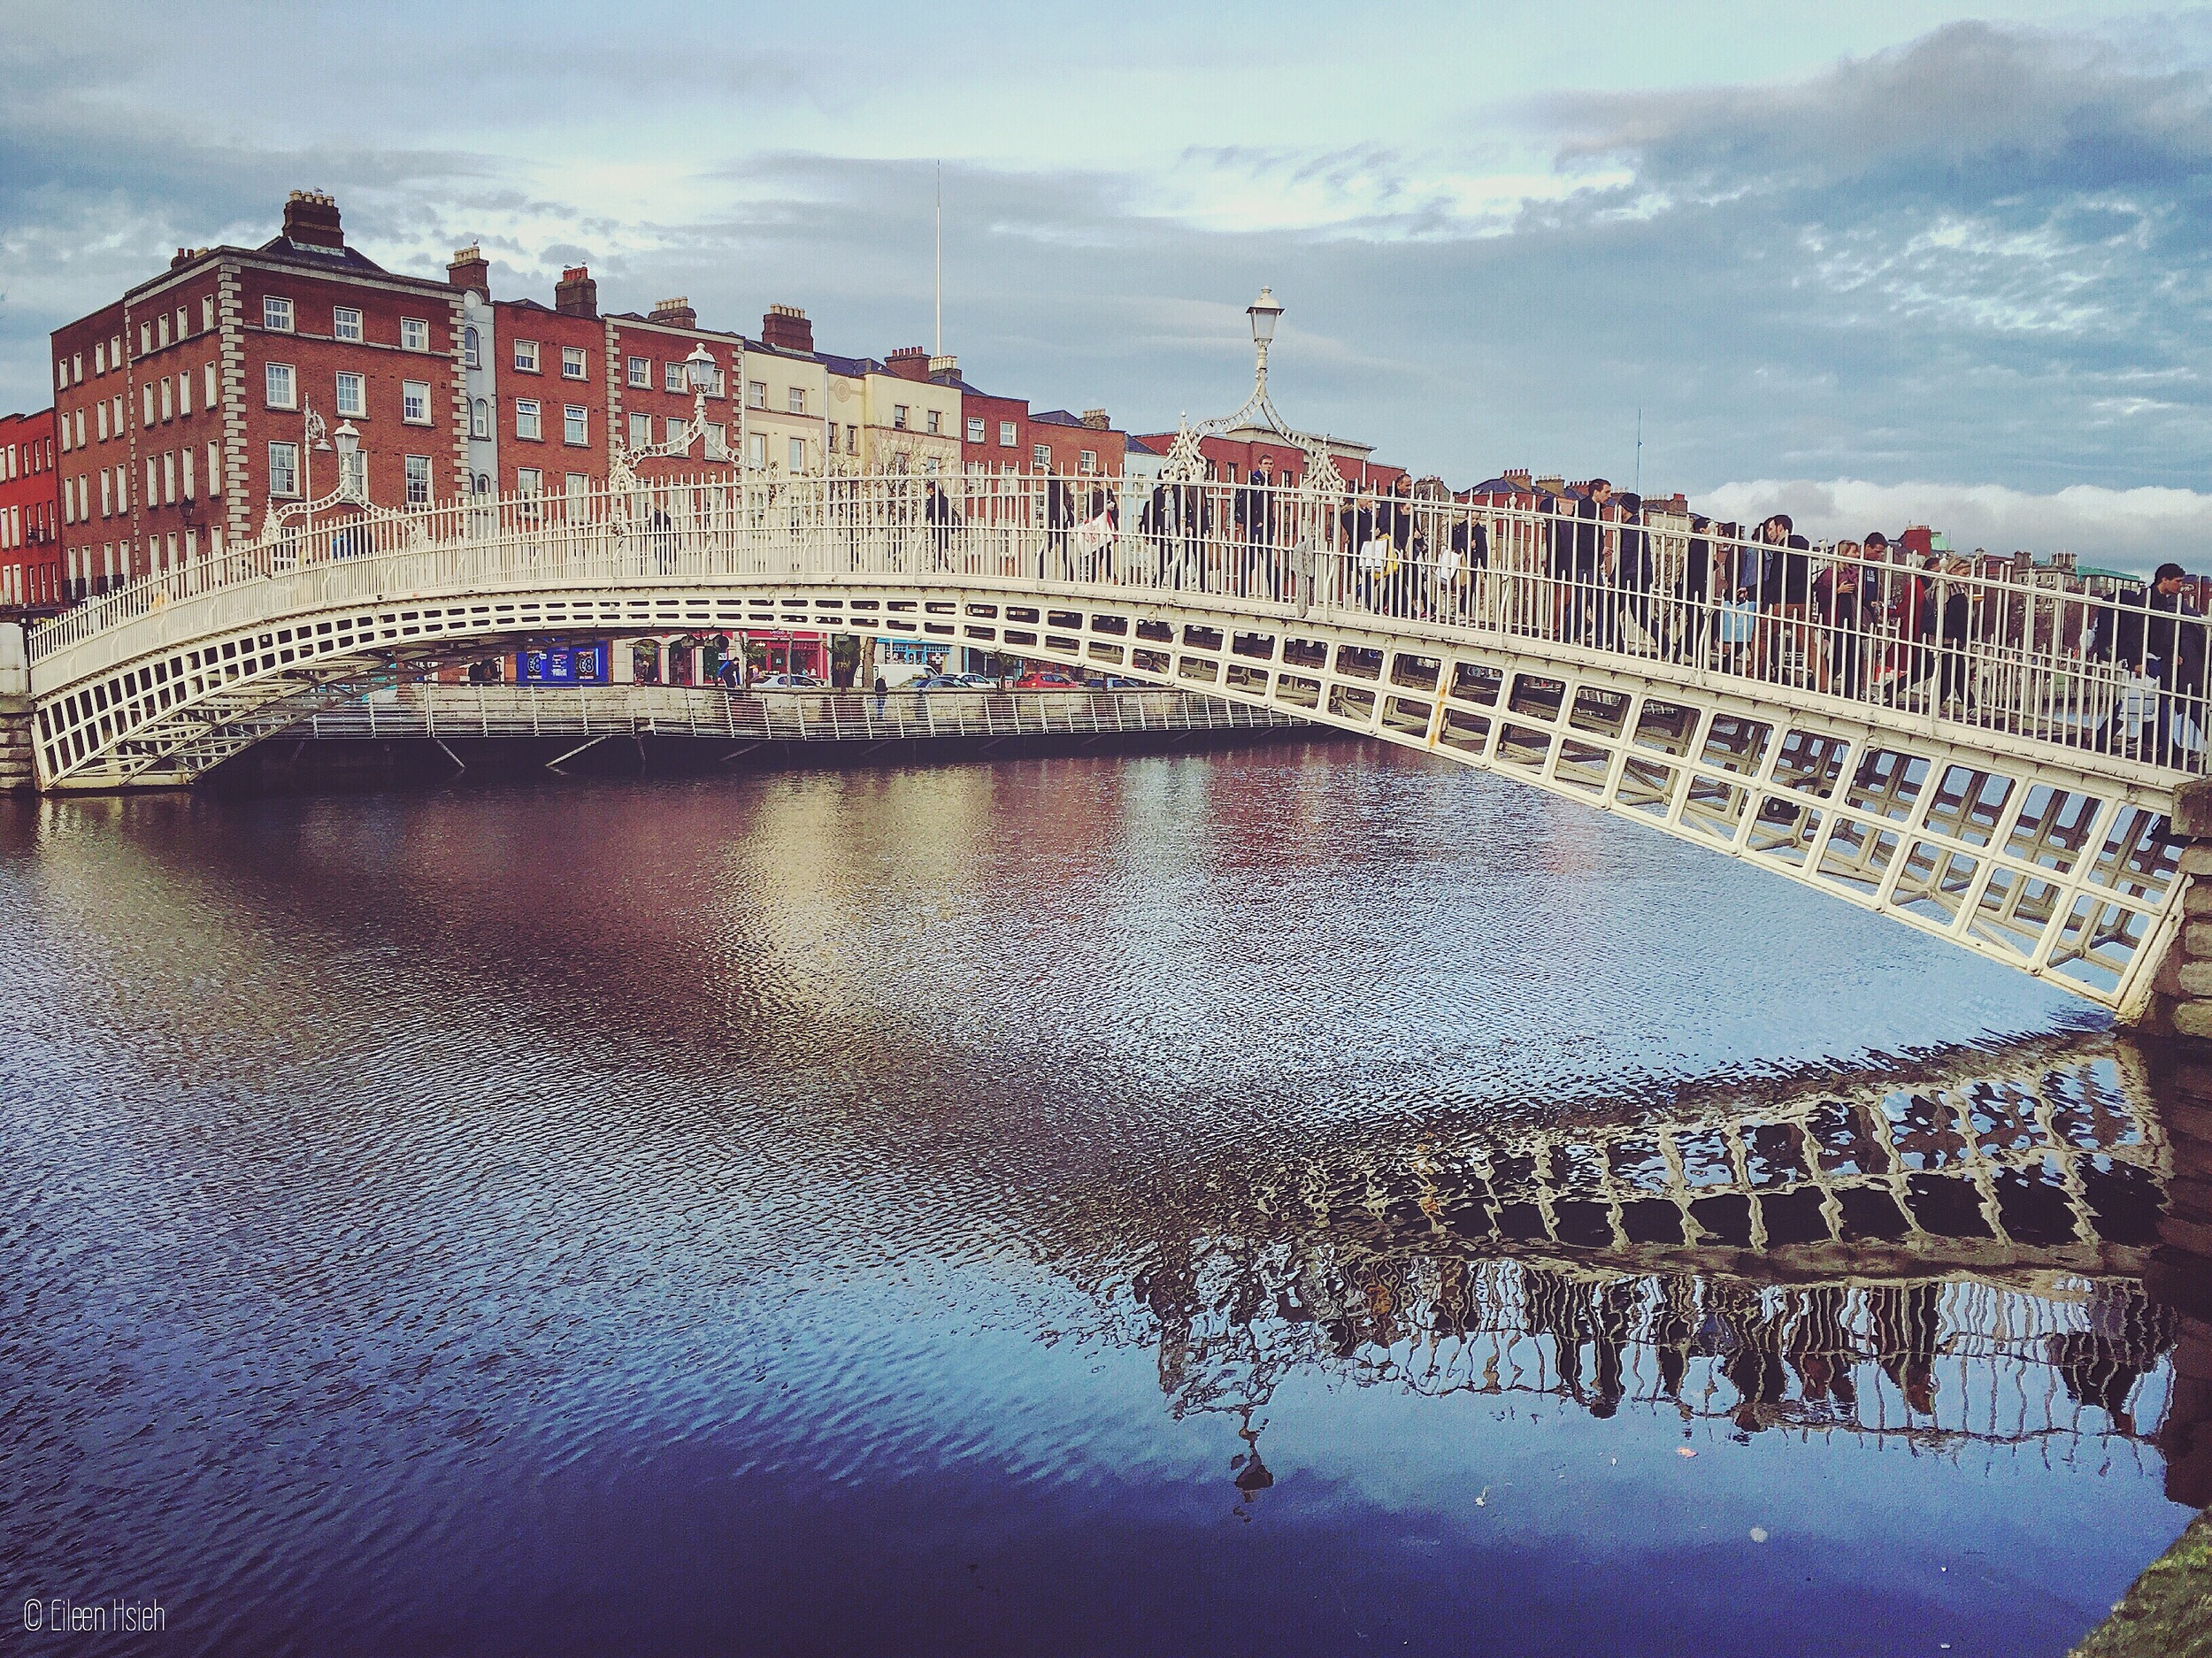 The cast iron Ha'penny Bridge stretches elegantly over the River Liffey in Dublin. Built in 1816, this bridge is nicknamed after the halfpenny toll it once extracted from anyone crossing it.